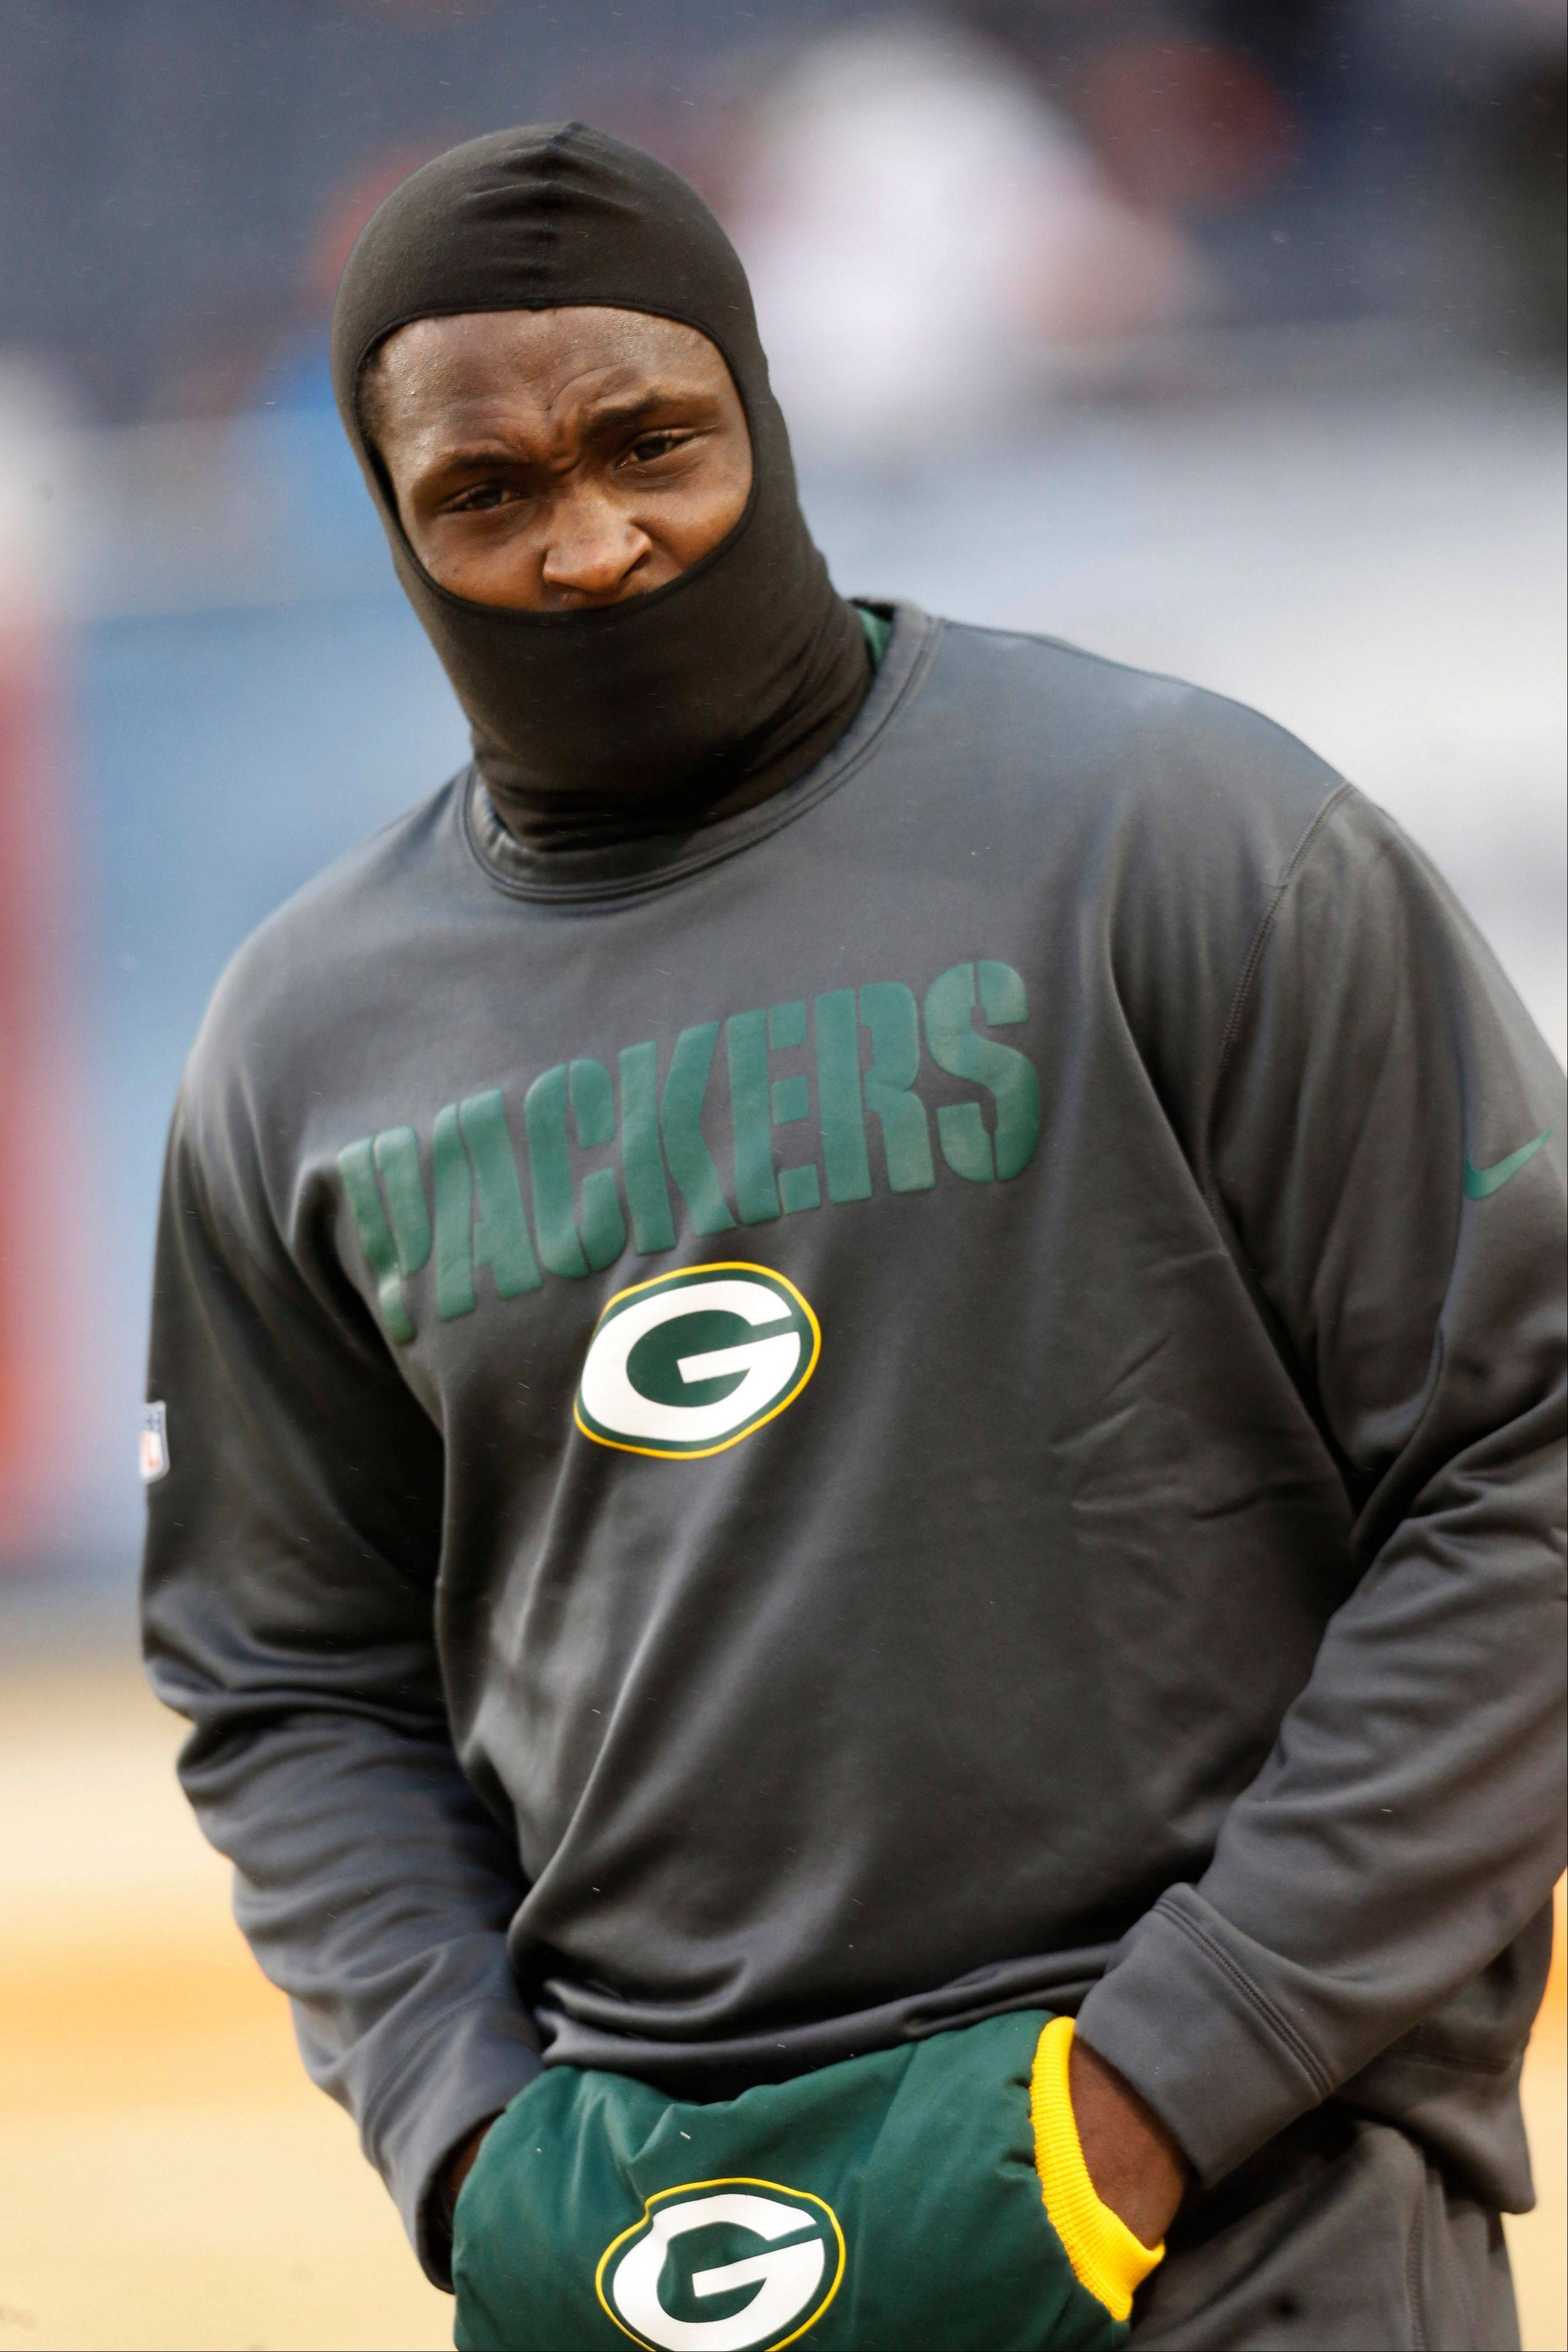 Green Bay linebacker Nate Palmer bundles up before last week�s game against the Bears at Soldier Field. Temperatures will be in the single digits and dropping when the San Francisco 49ers and Packers kick off Sunday afternoon.